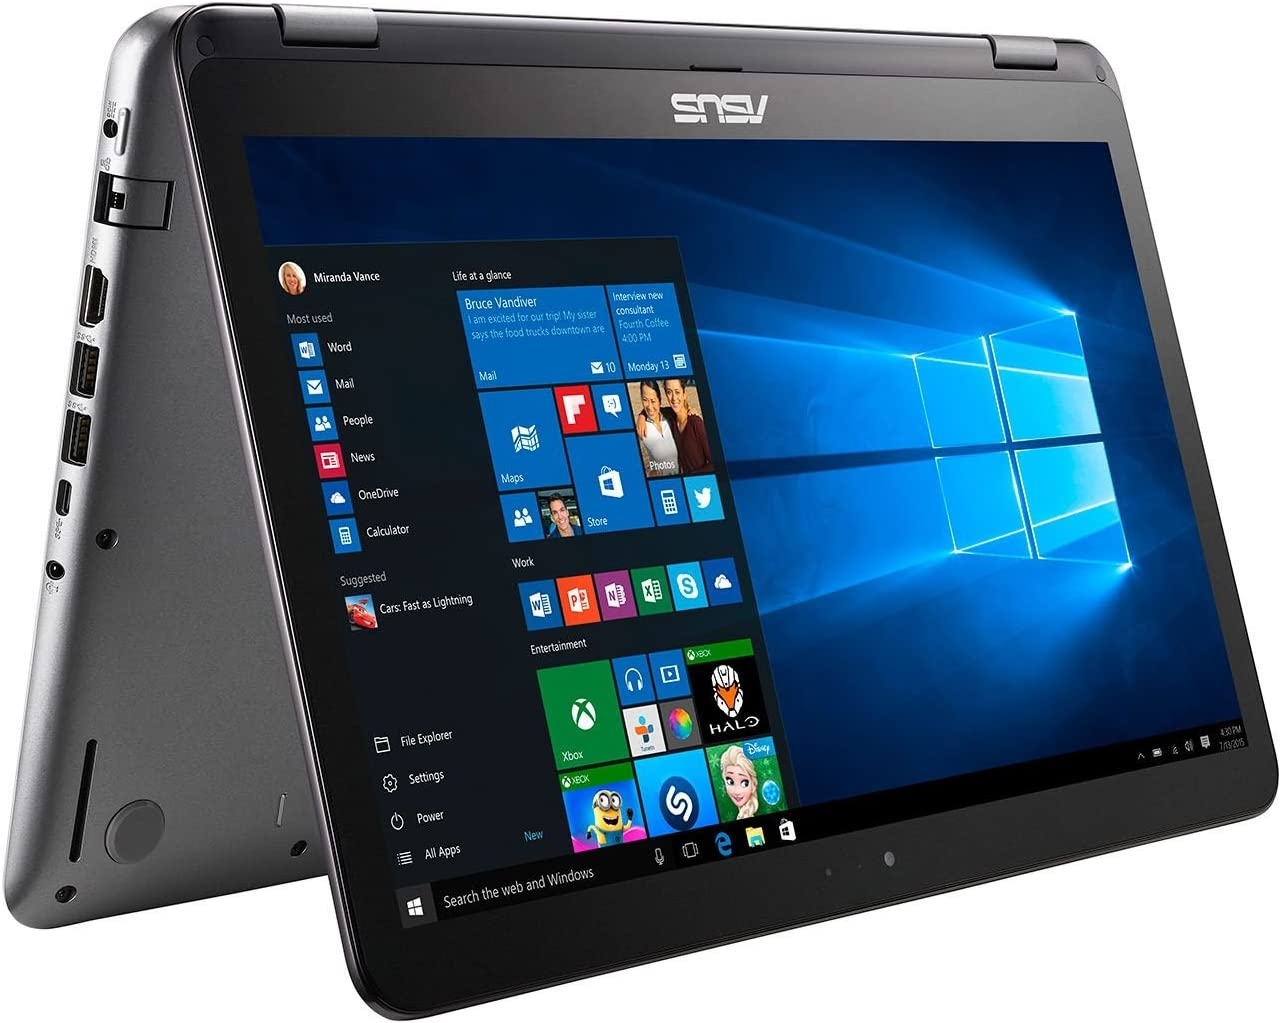 "2017 ASUS Convertible 2-in-1 15.6"" Full HD Touchscreen High Performance Laptop PC, Intel Core i5-7200 2.5GHz, 8GB RAM, 1TB HDD + 128GB SSD, NVIDIA GeForce 940MX, HDMI, Bluetooth, USB 3.1, Windows 10"